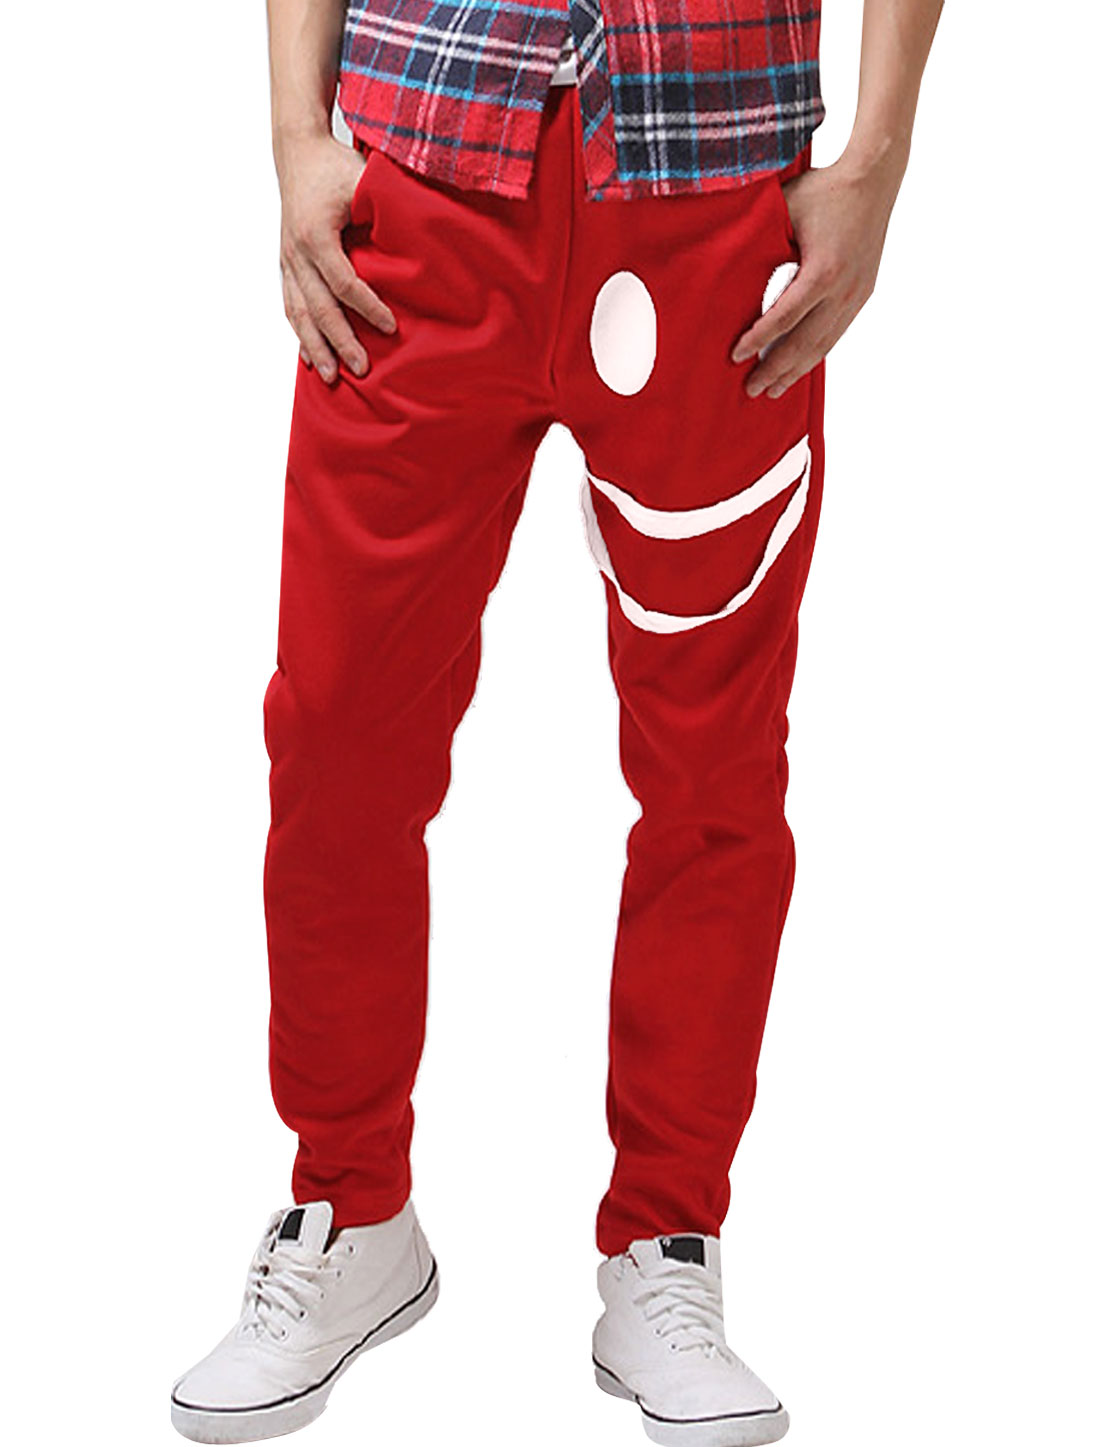 Men Hip Pockets Drawstring Smily Face Design Sports Pants Red W28